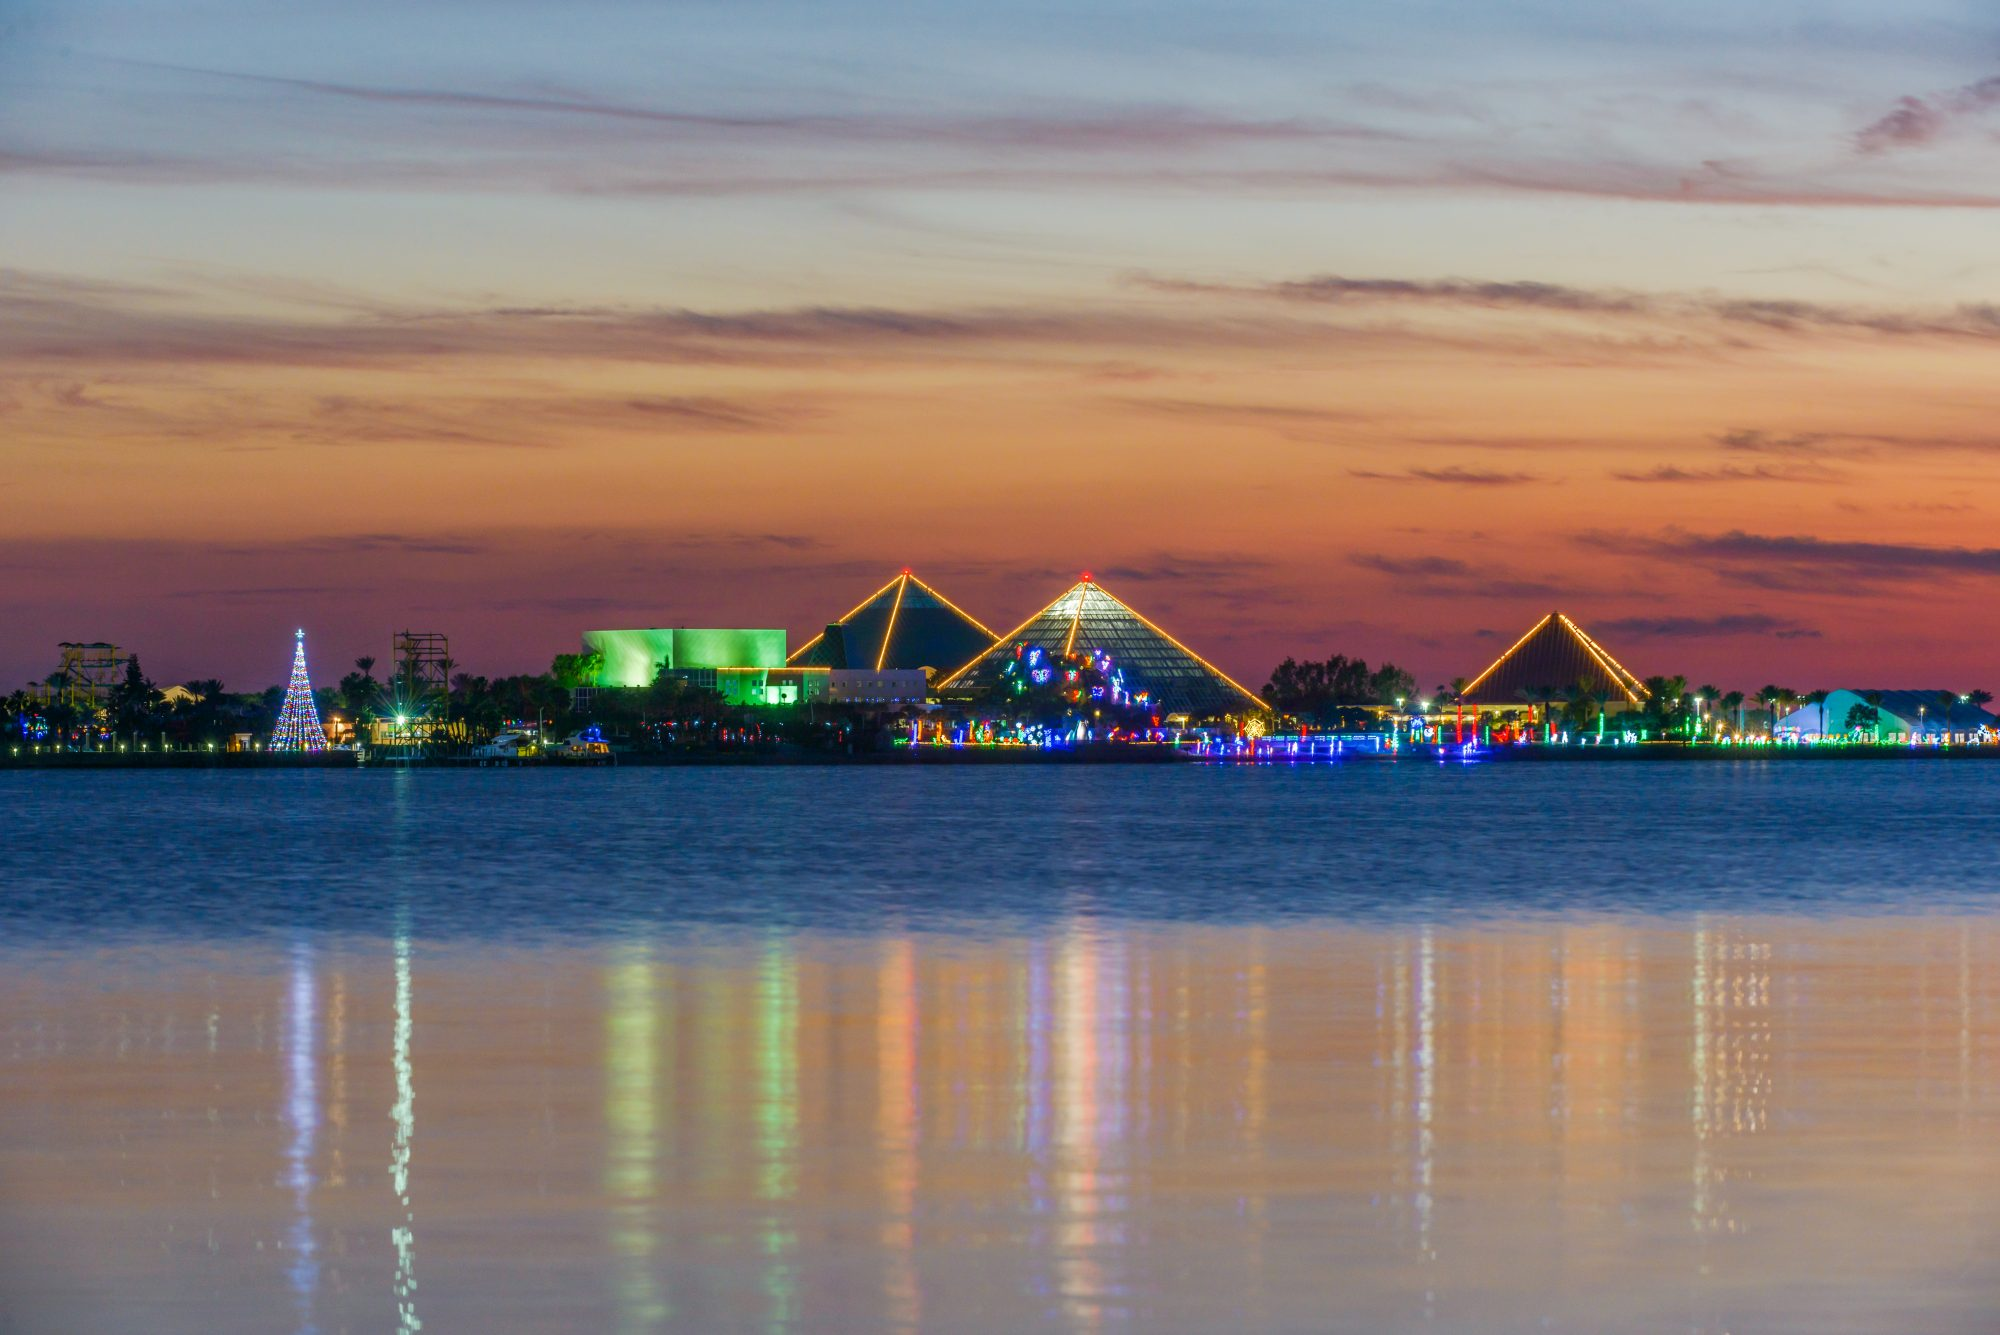 Holidays at Moody Gardens in Galveston, Texas